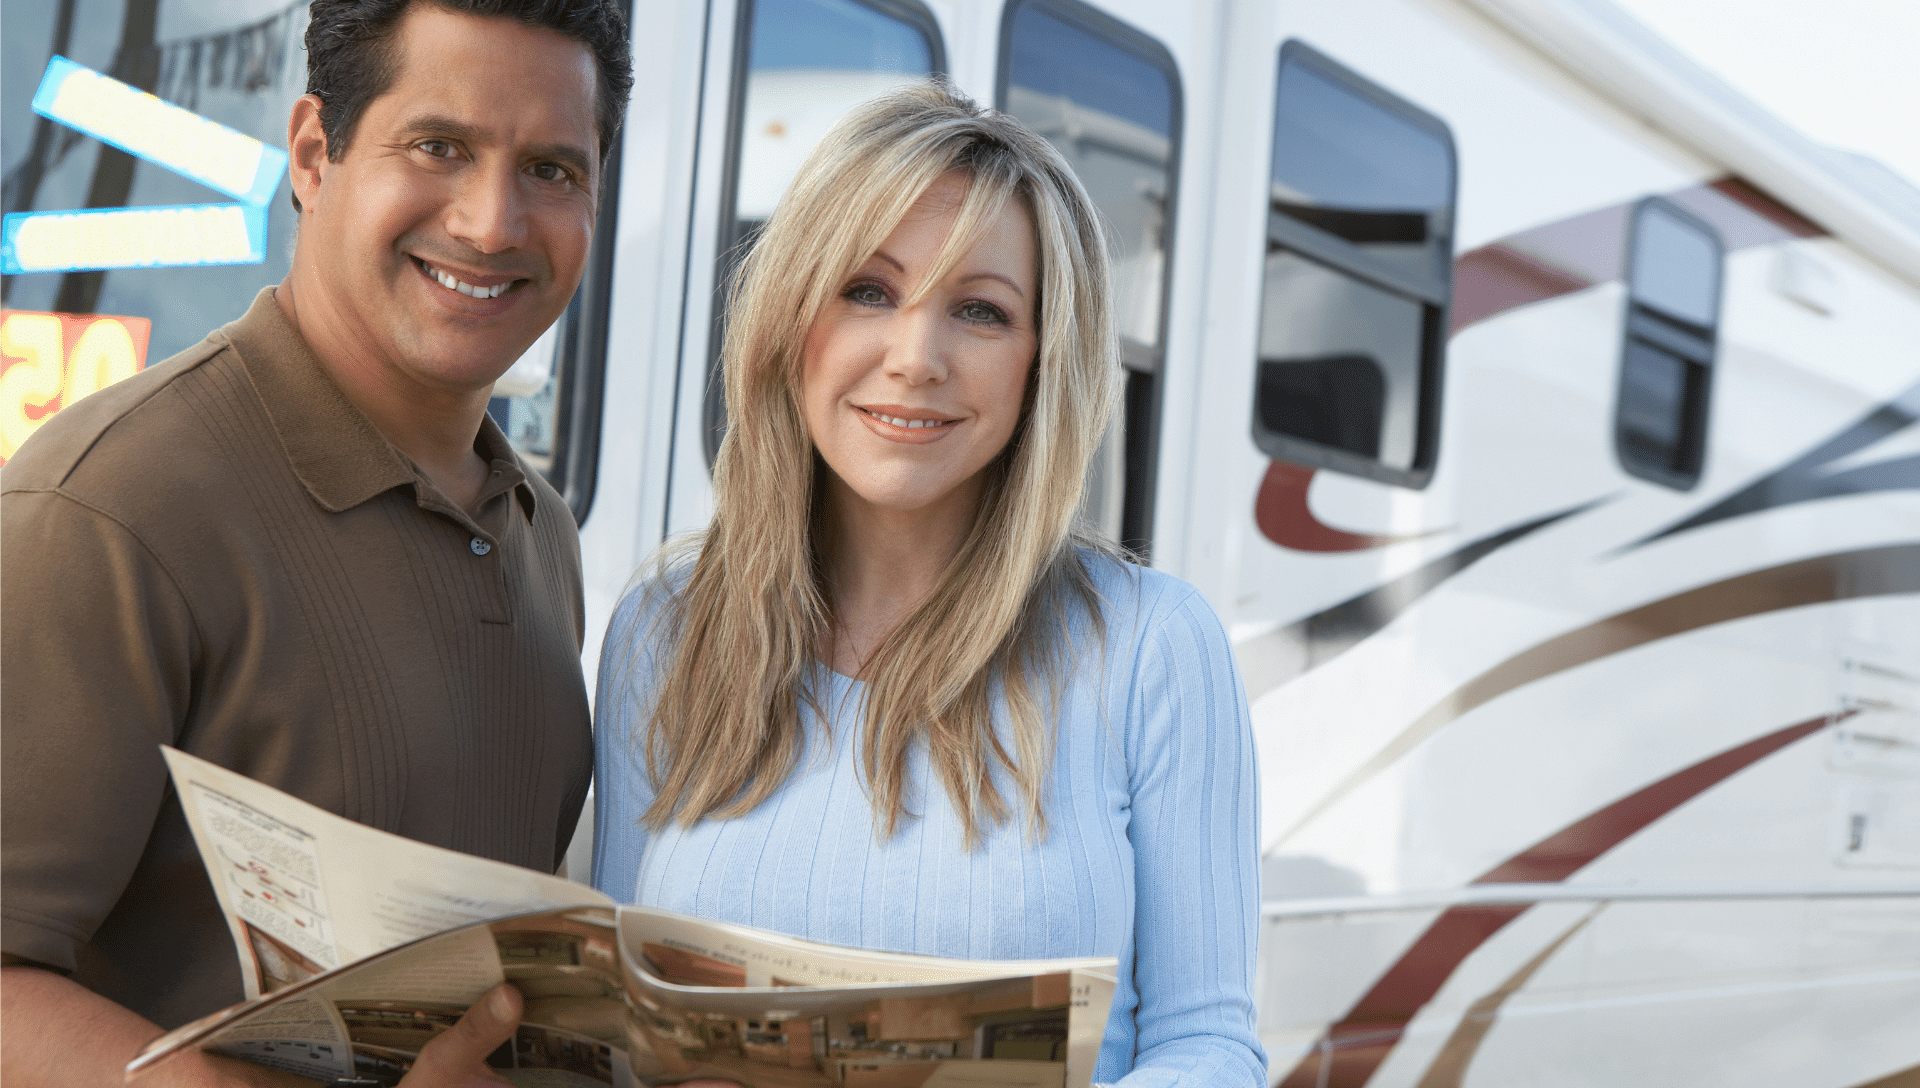 A smiling man and woman look at a brochure at an RV dealership, standing in front of an RV.